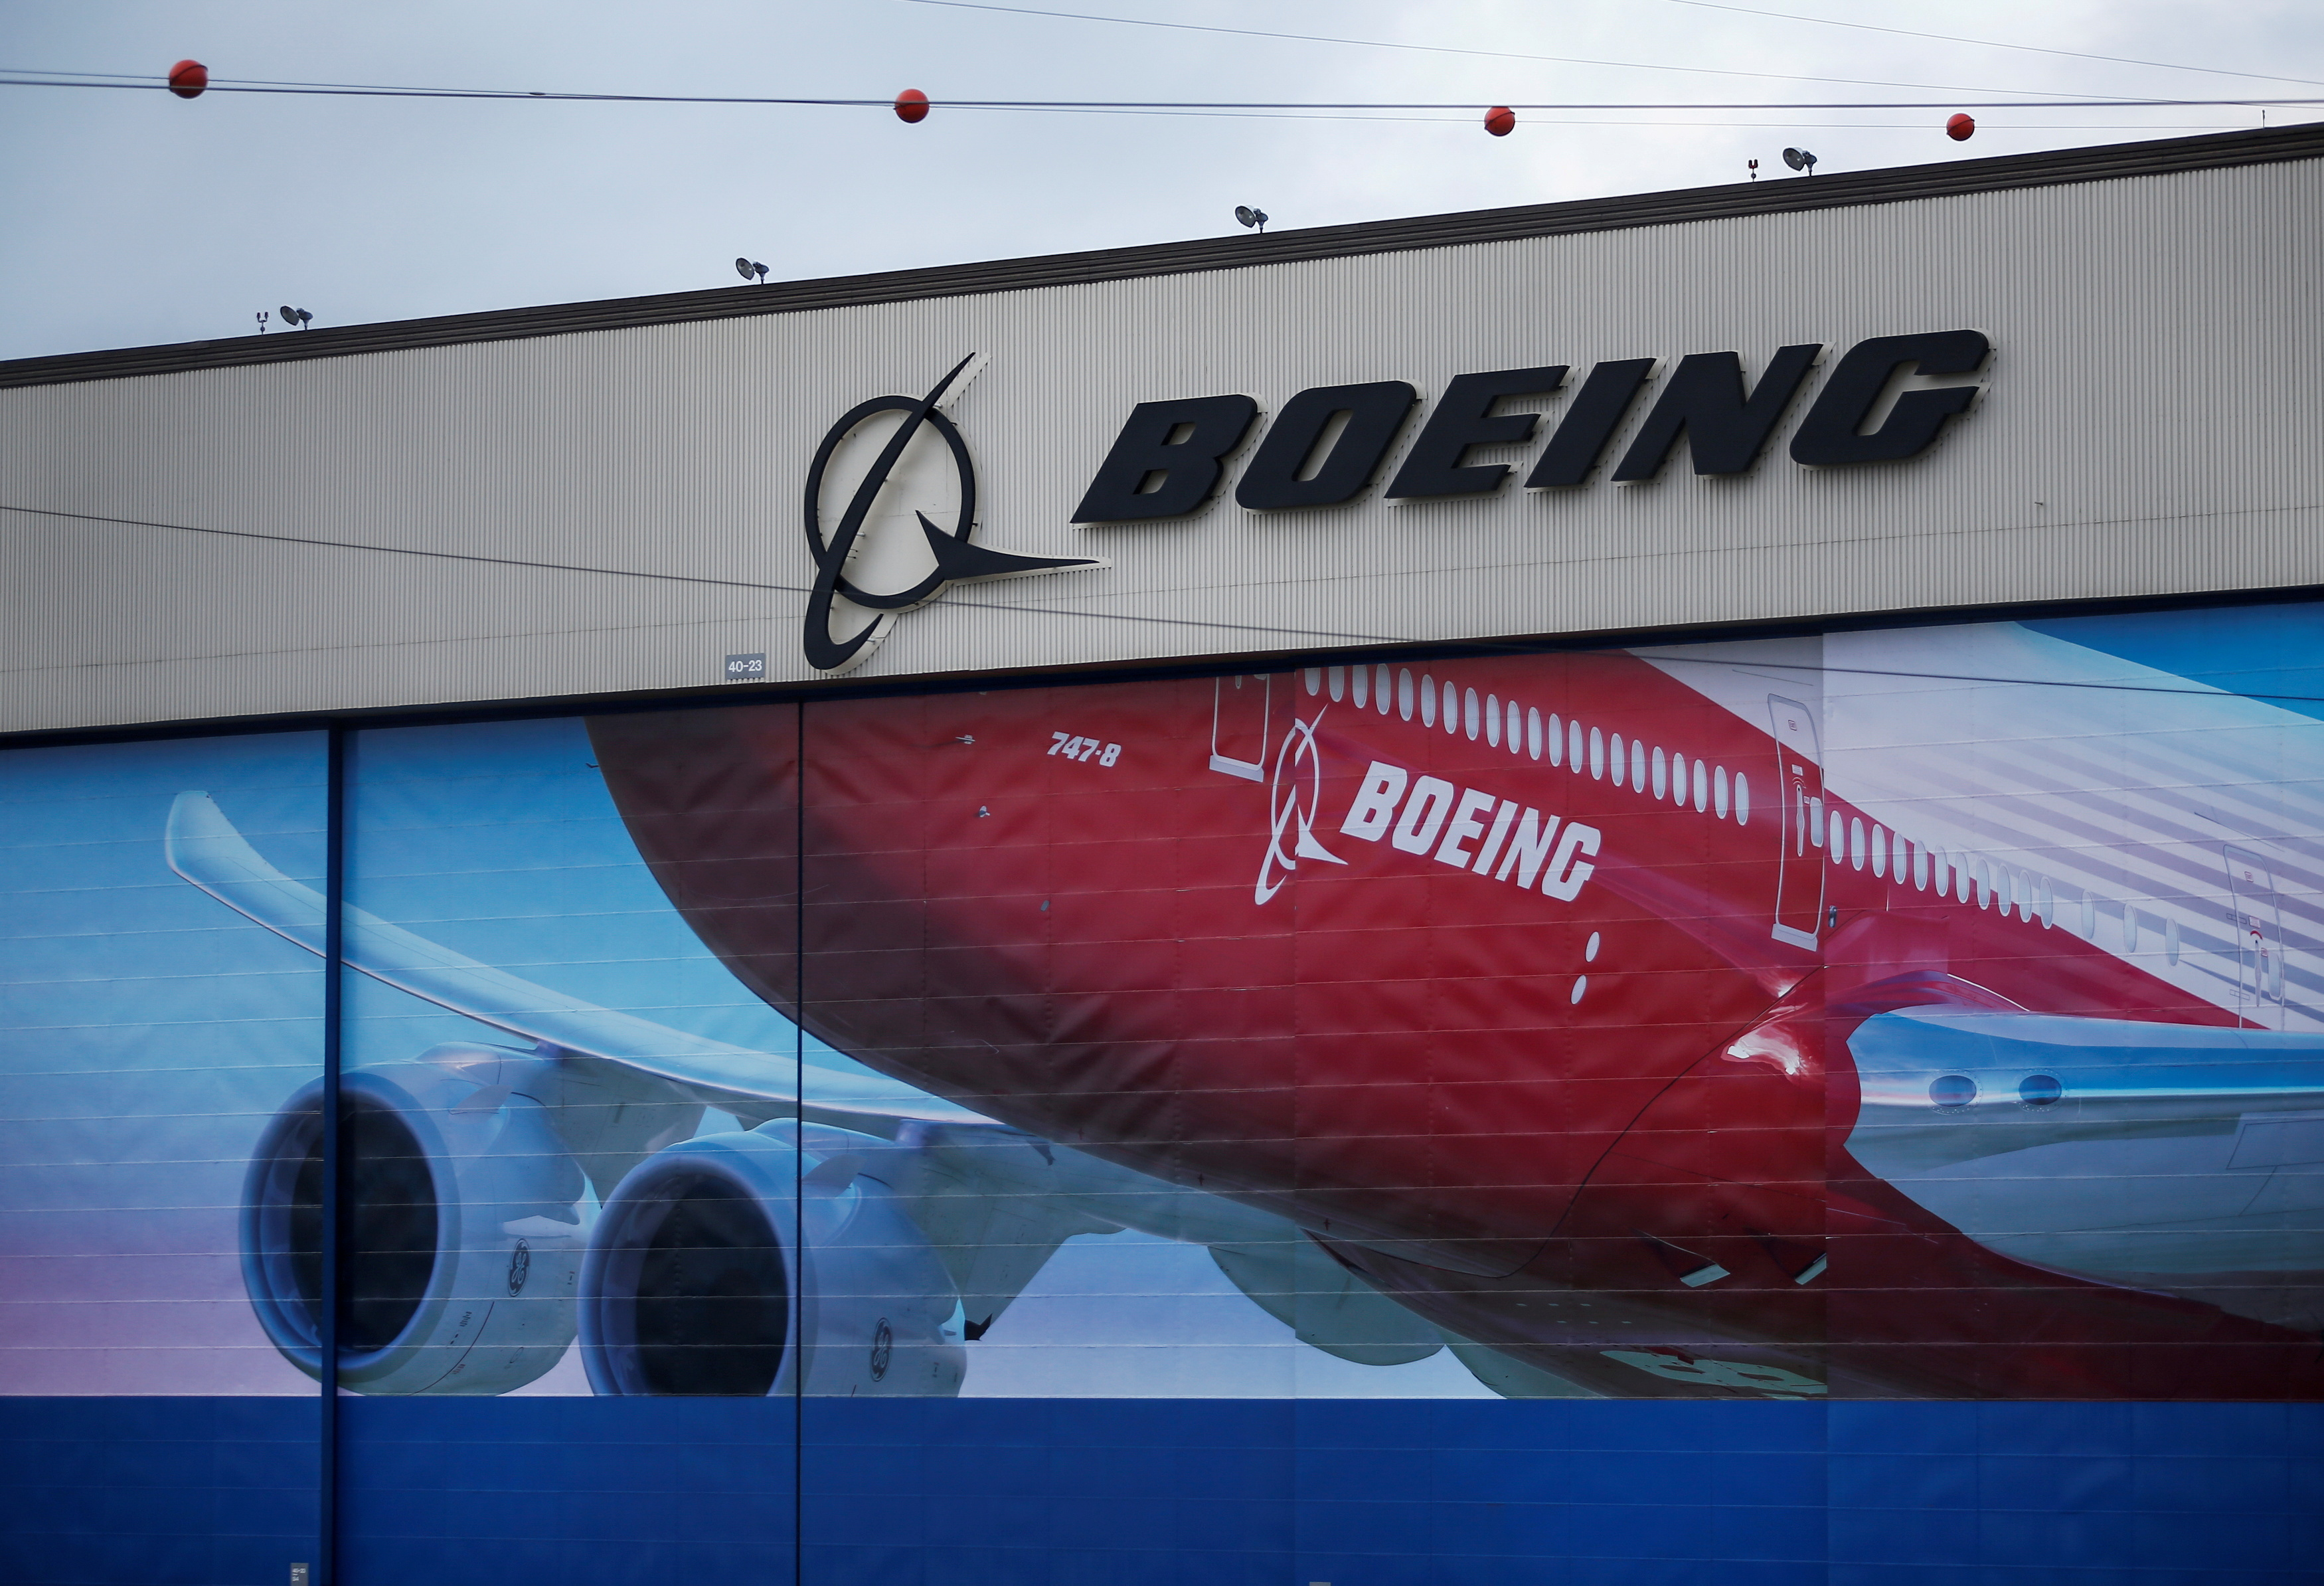 A Boeing logo is seen at the company's facility in Everett, Washington, U.S., Jan. 21, 2020. REUTERS/Lindsey Wasson